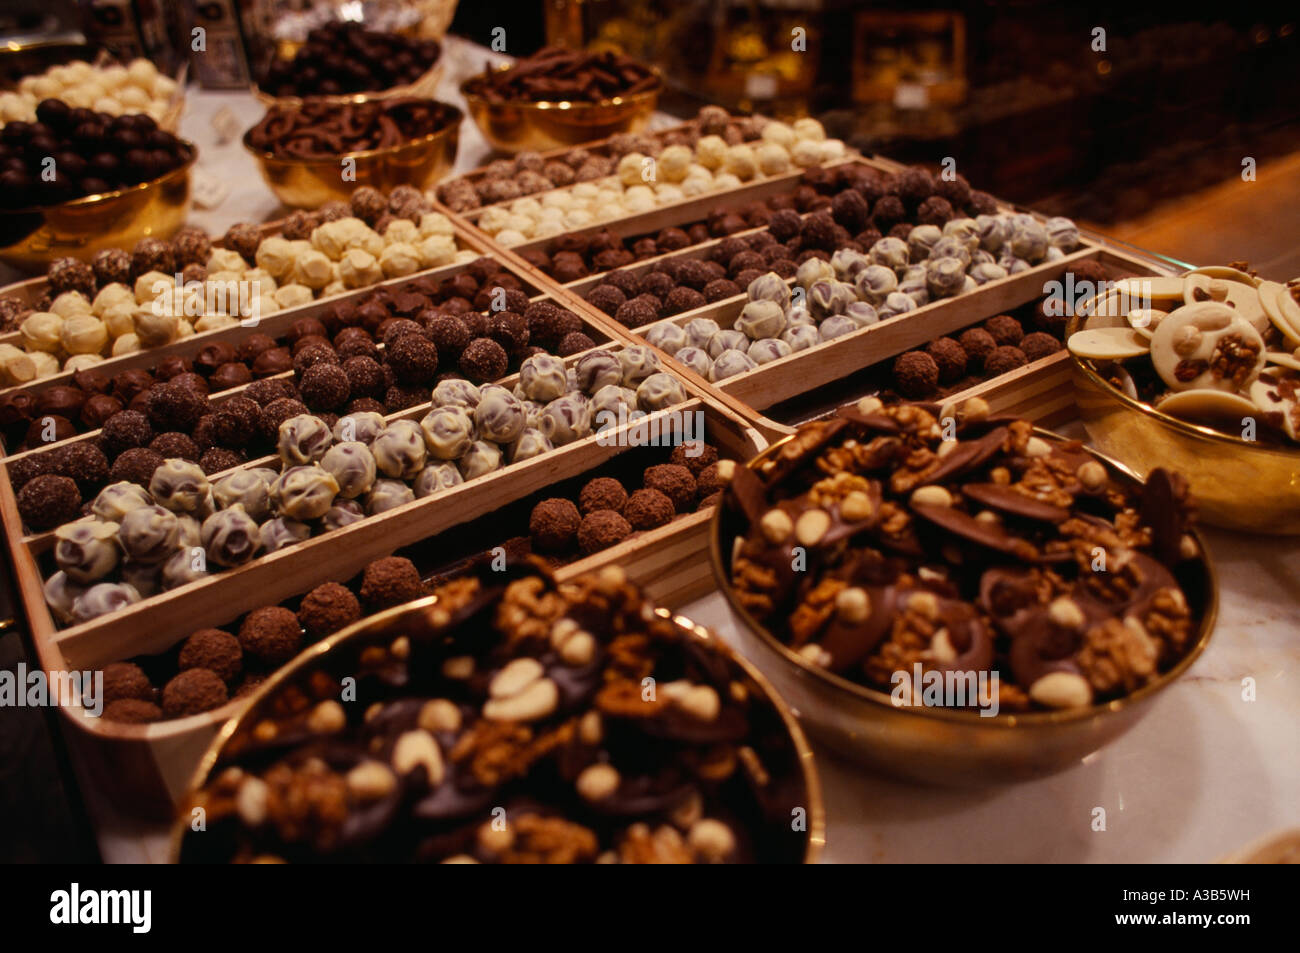 BELGIUM Brabant Brussels Food Sweets Display of Belgian chocolate ...